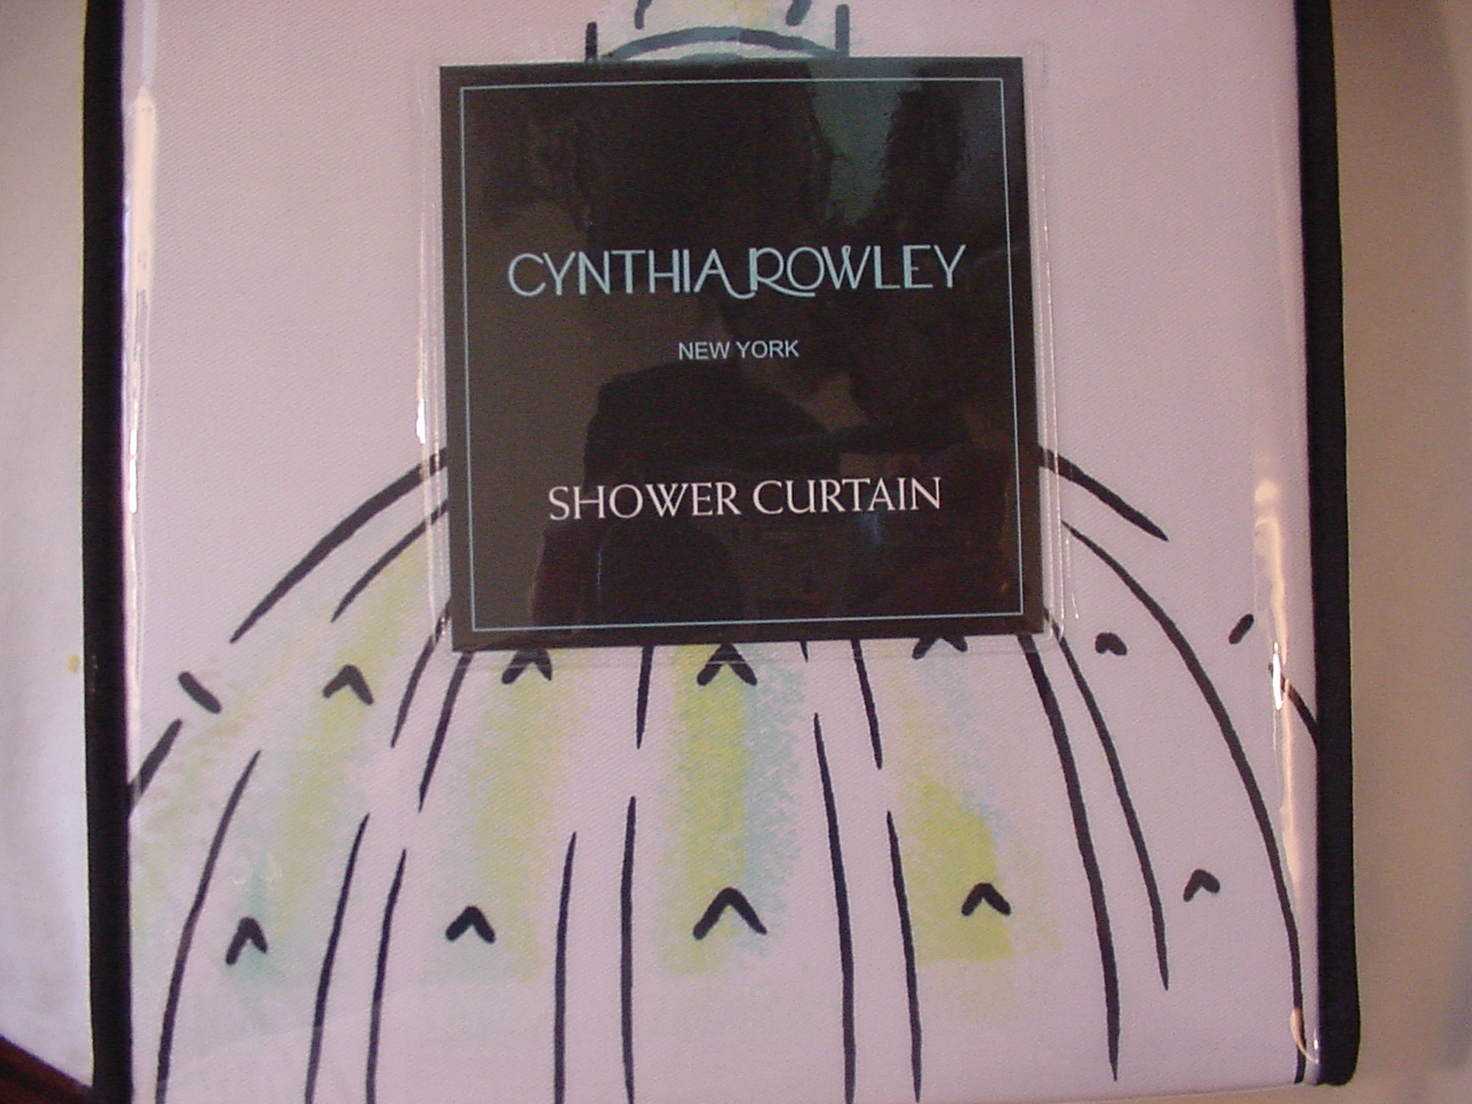 Cynthia Rowley Rome Italy White/Black/Aqua/Green Shower Curtain